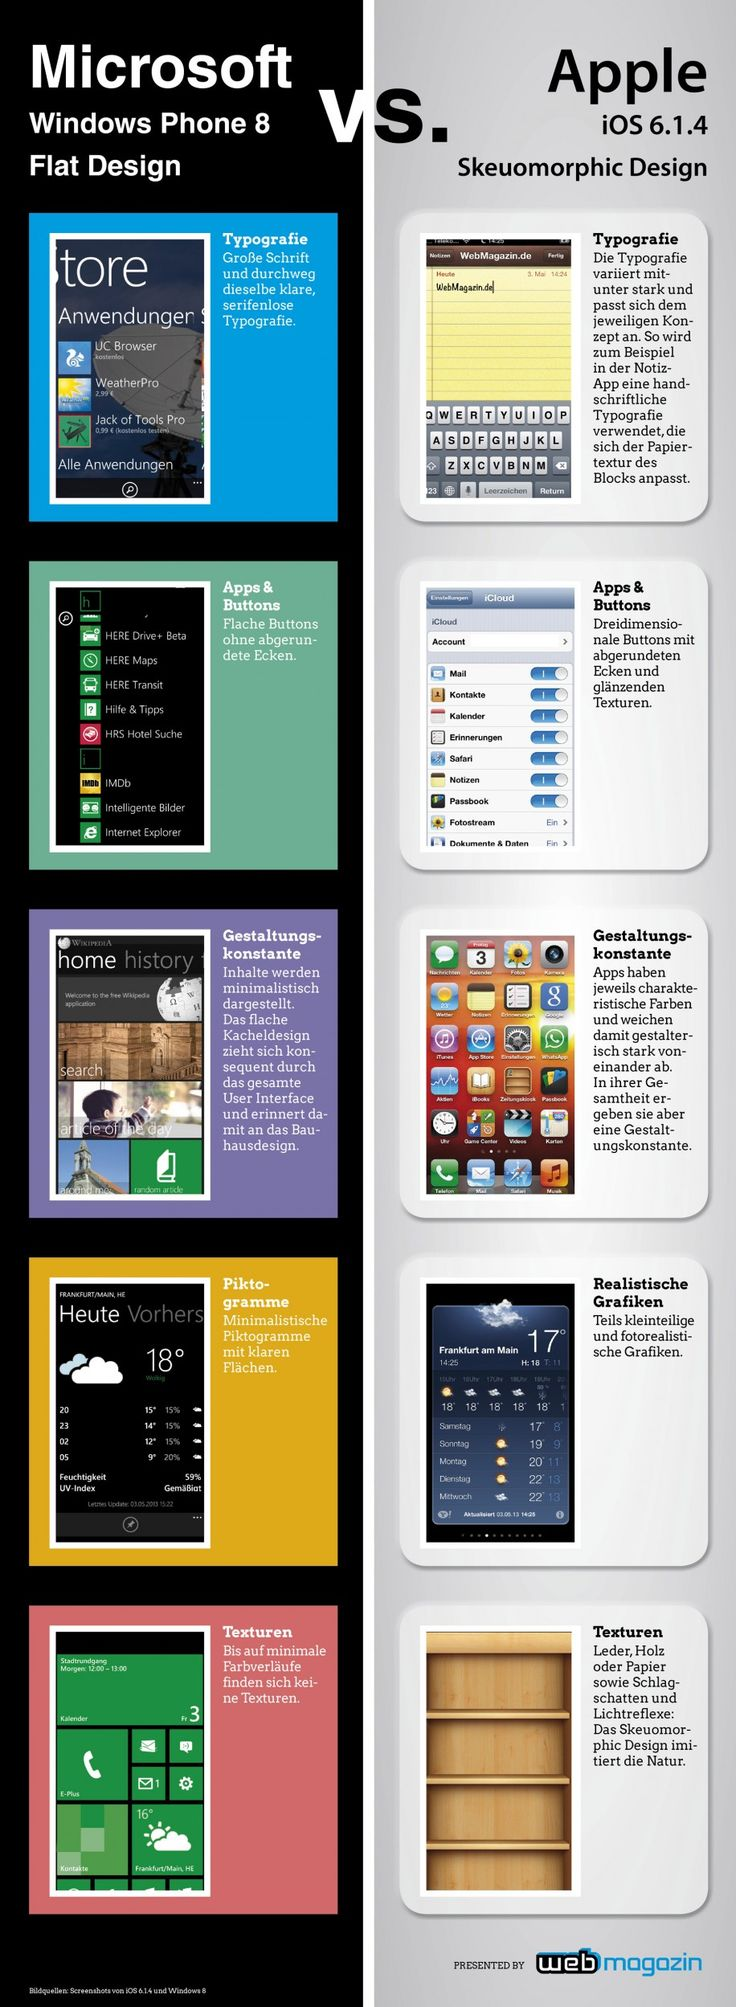 170 best skeuomorphism images on Pinterest | Buttons, Icons and ...